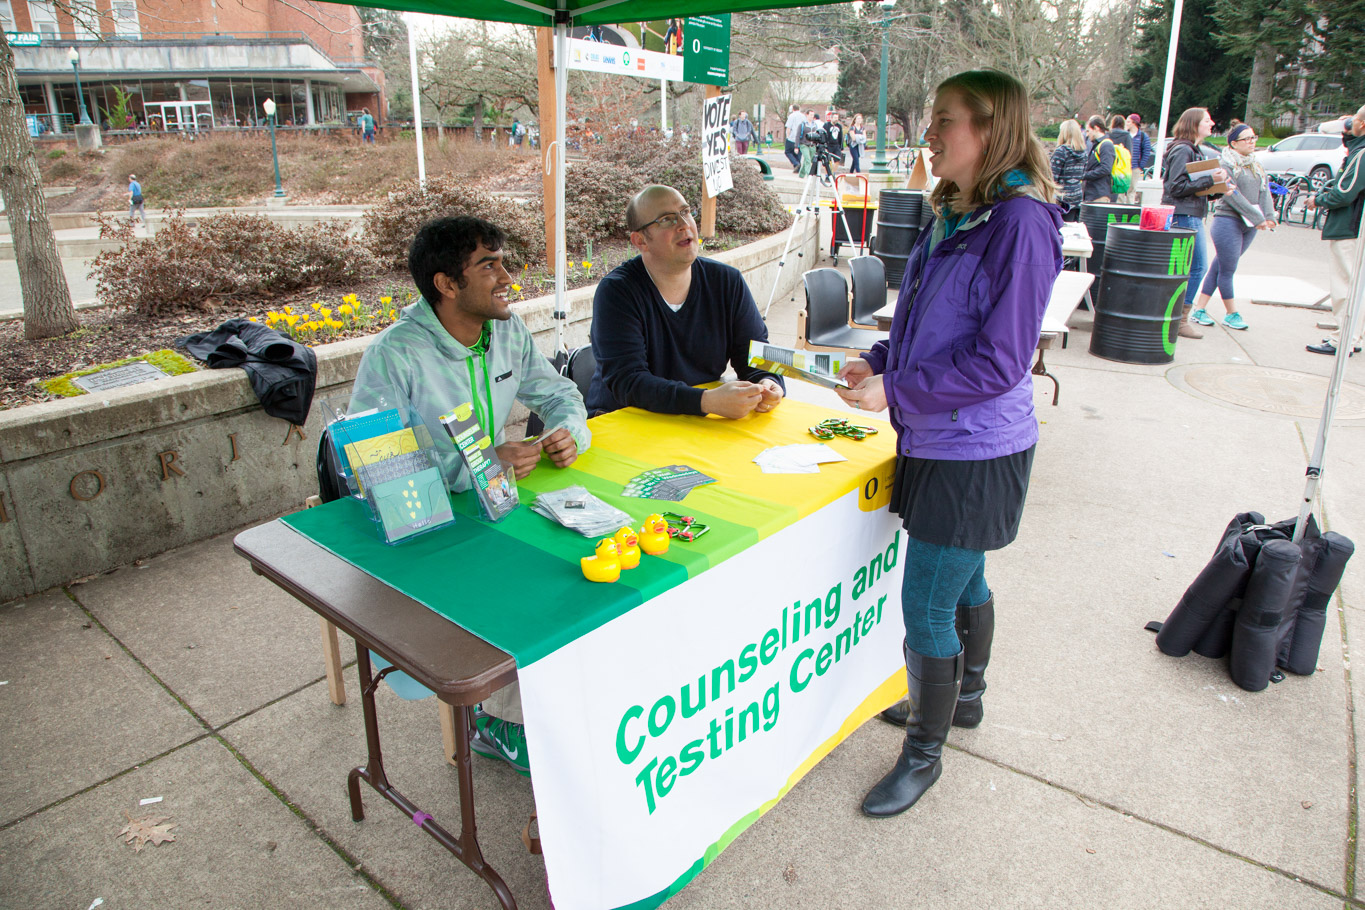 Counseling center staff table in front of the Erb Memorial Union